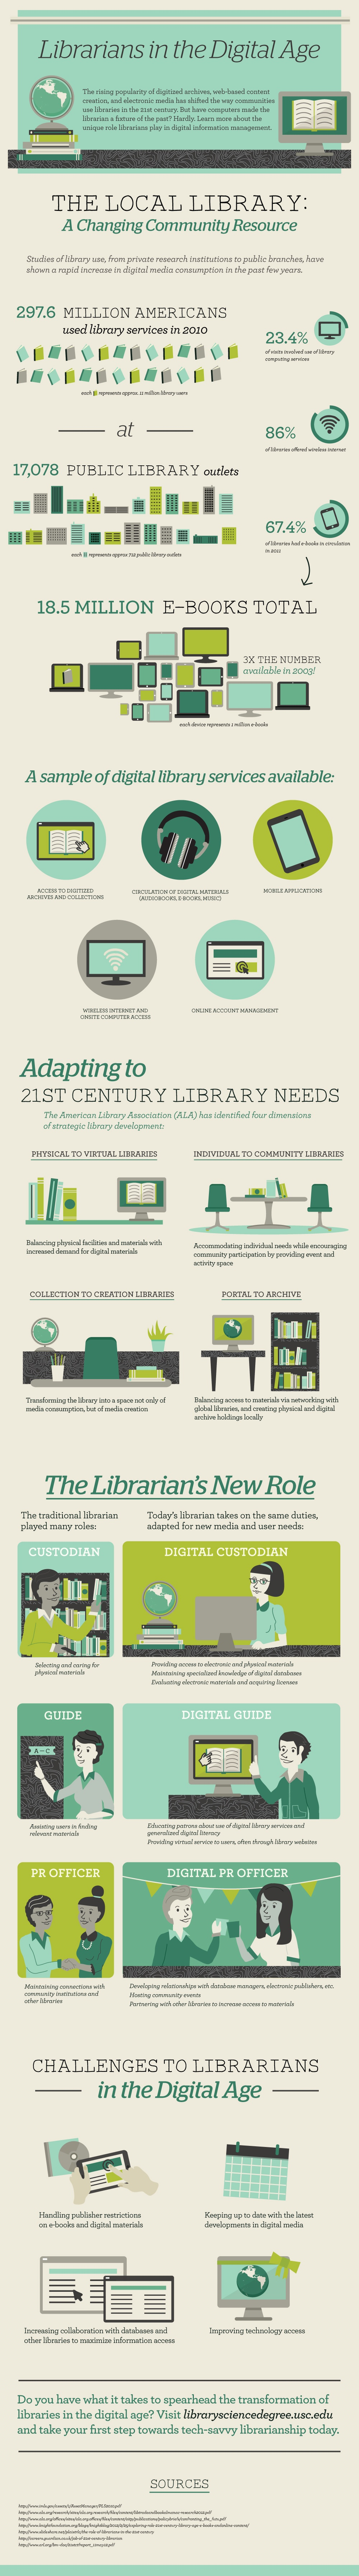 The Role of Librarians In The Digital Age Infographic